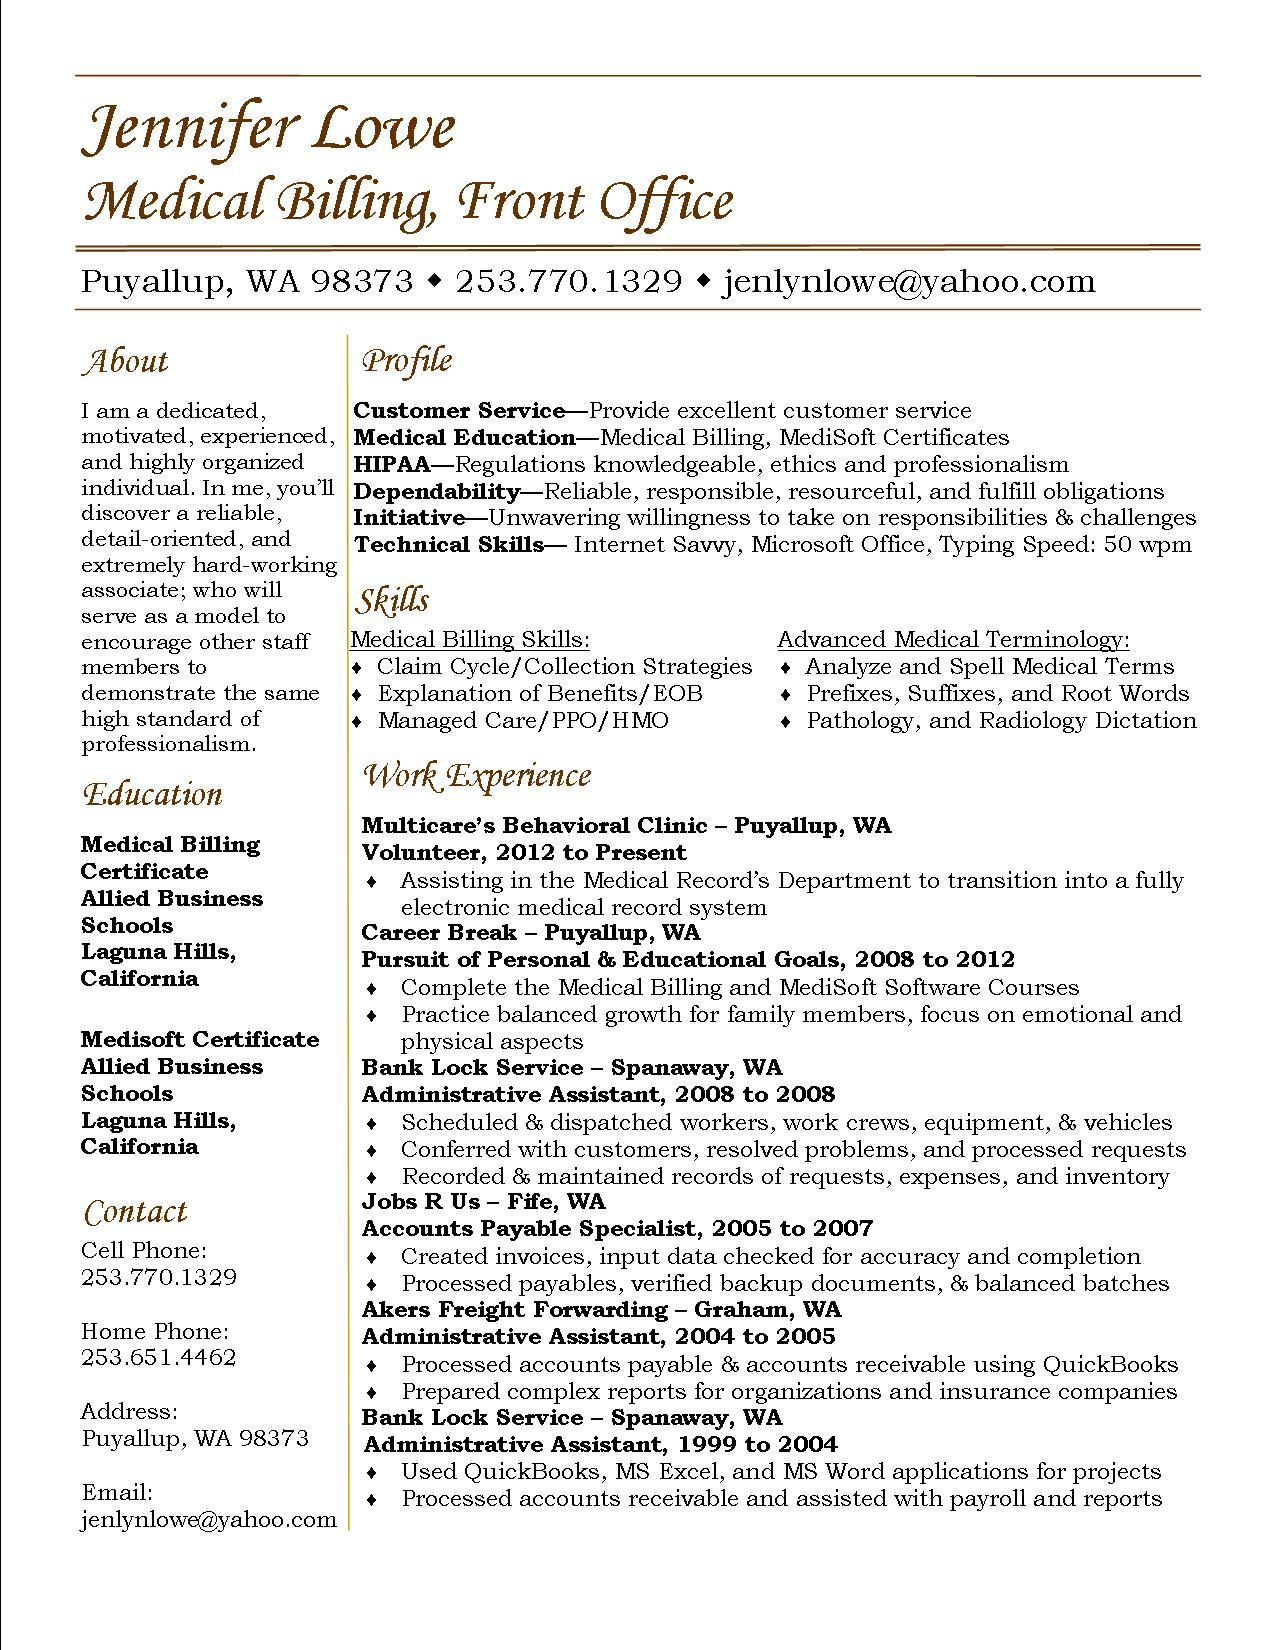 jennifer lowe resume medical billing resume career medical